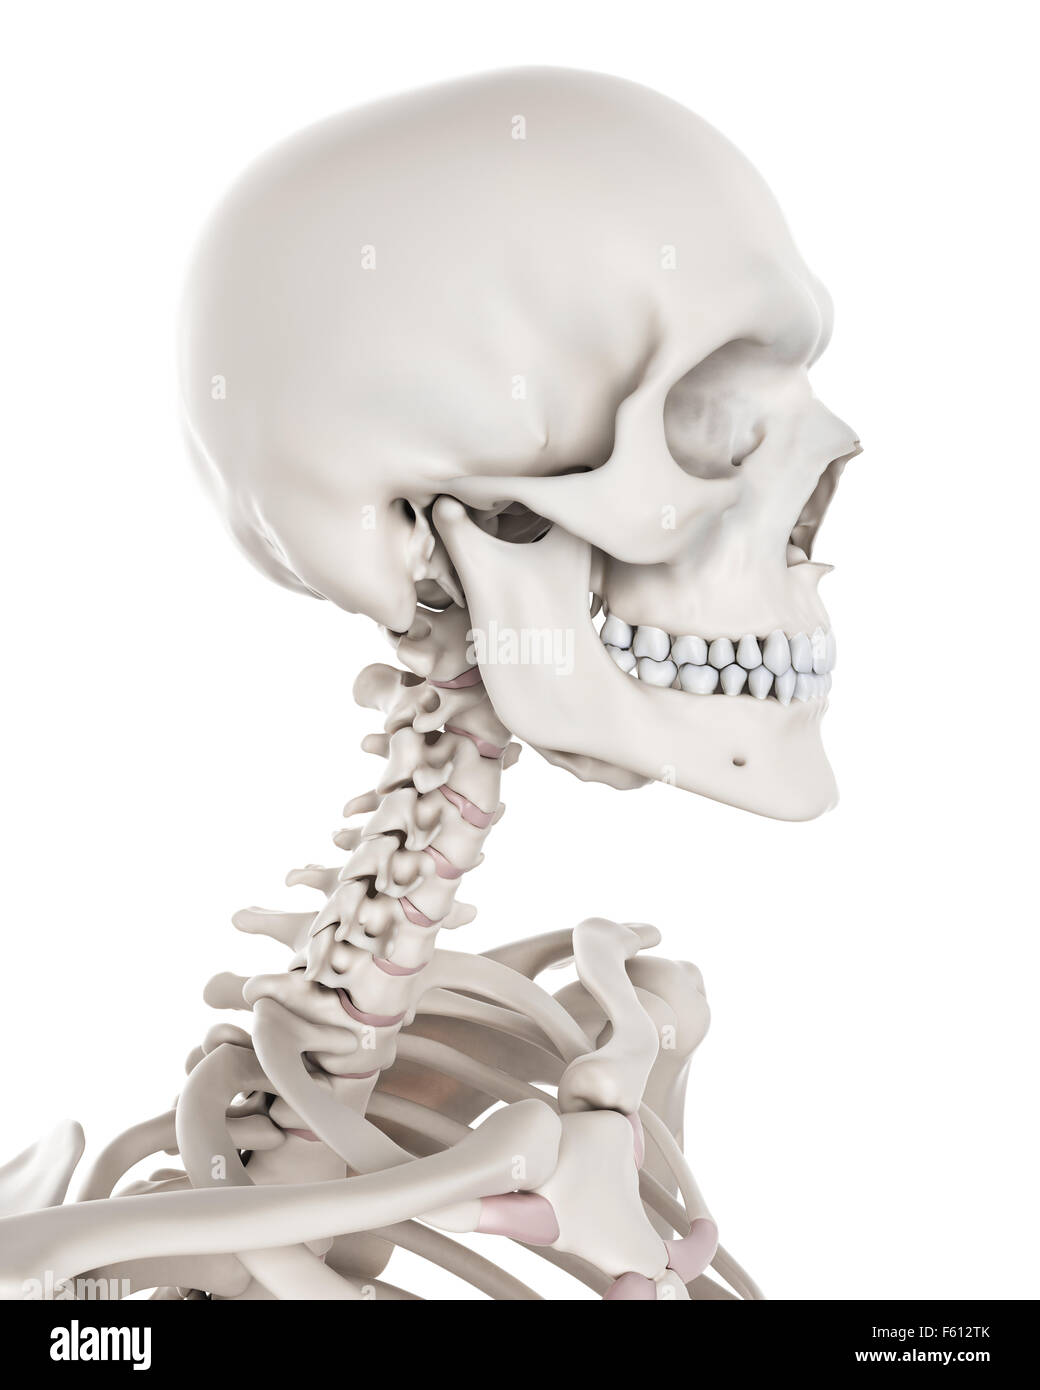 Medically Accurate Illustration Of The Skeletal System The Neck